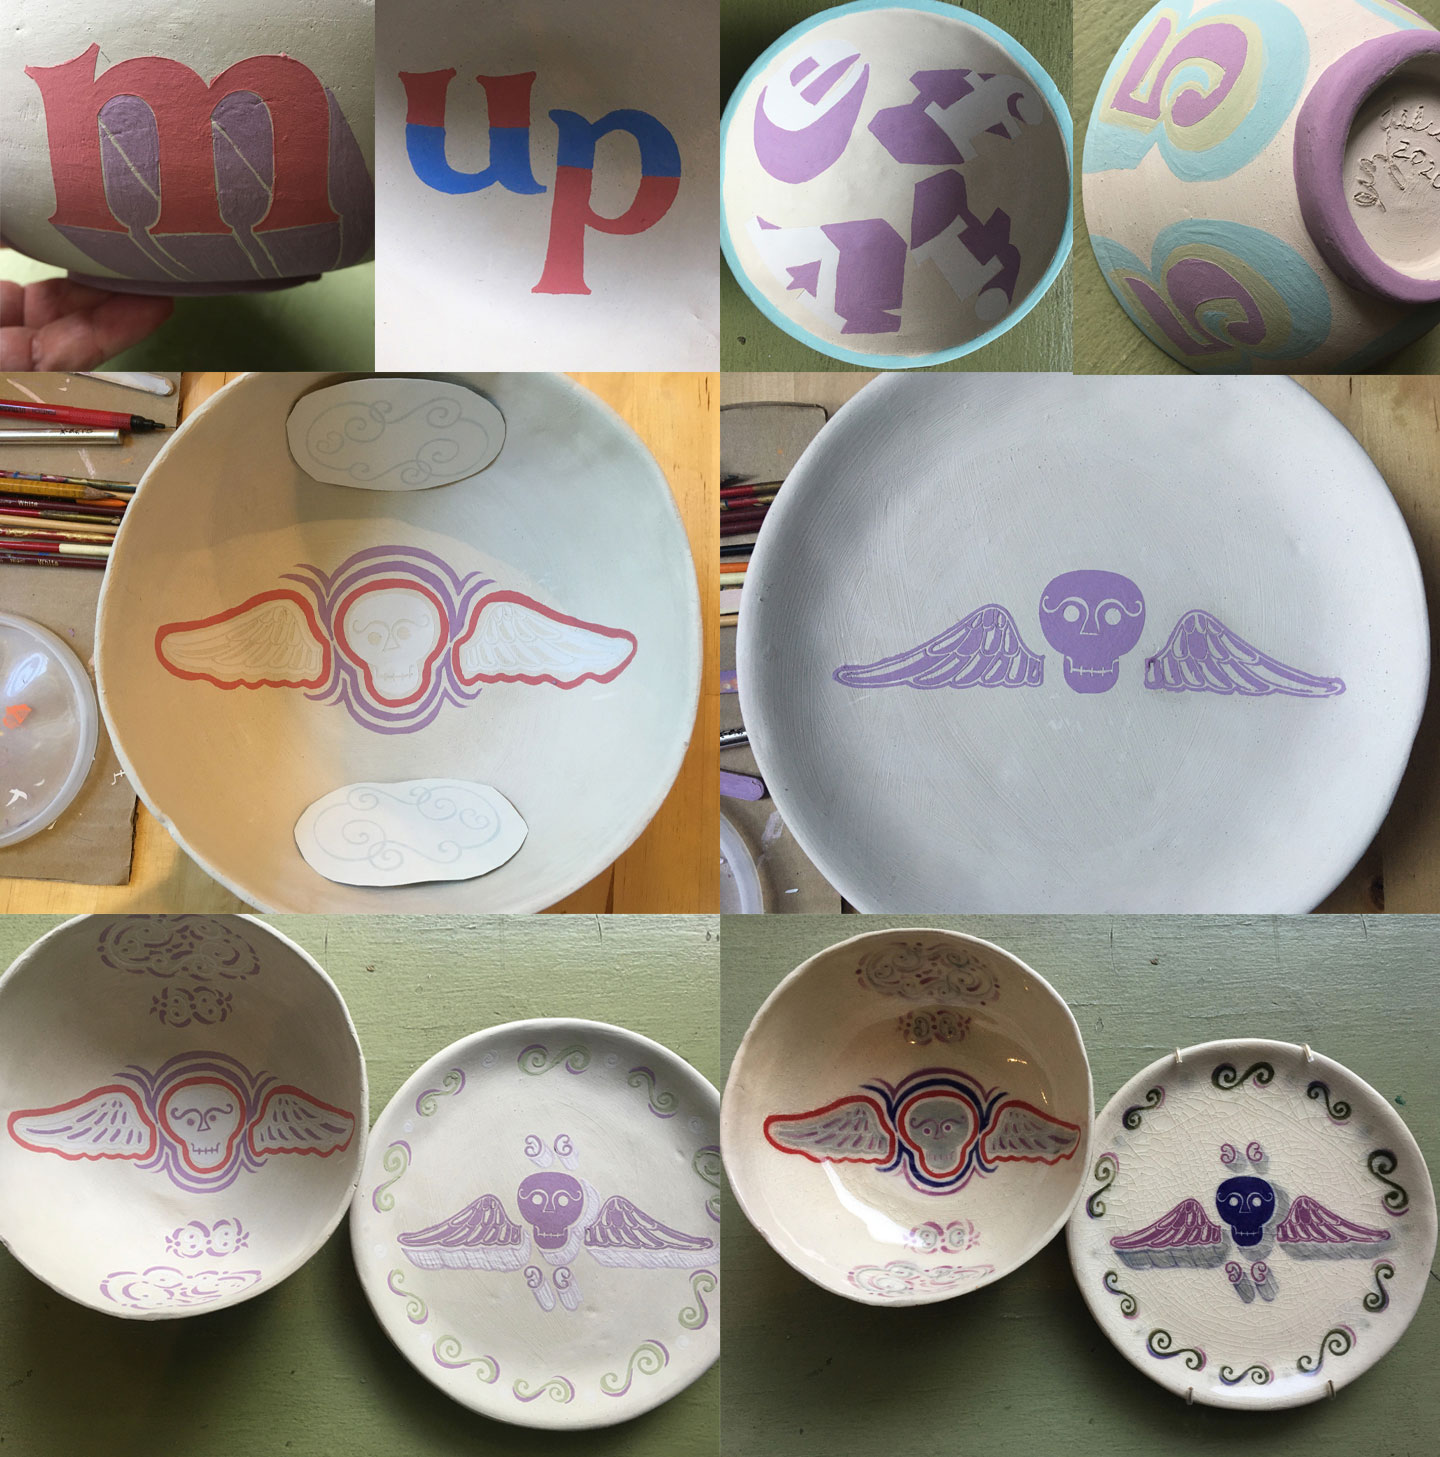 Hand built plates and bowls